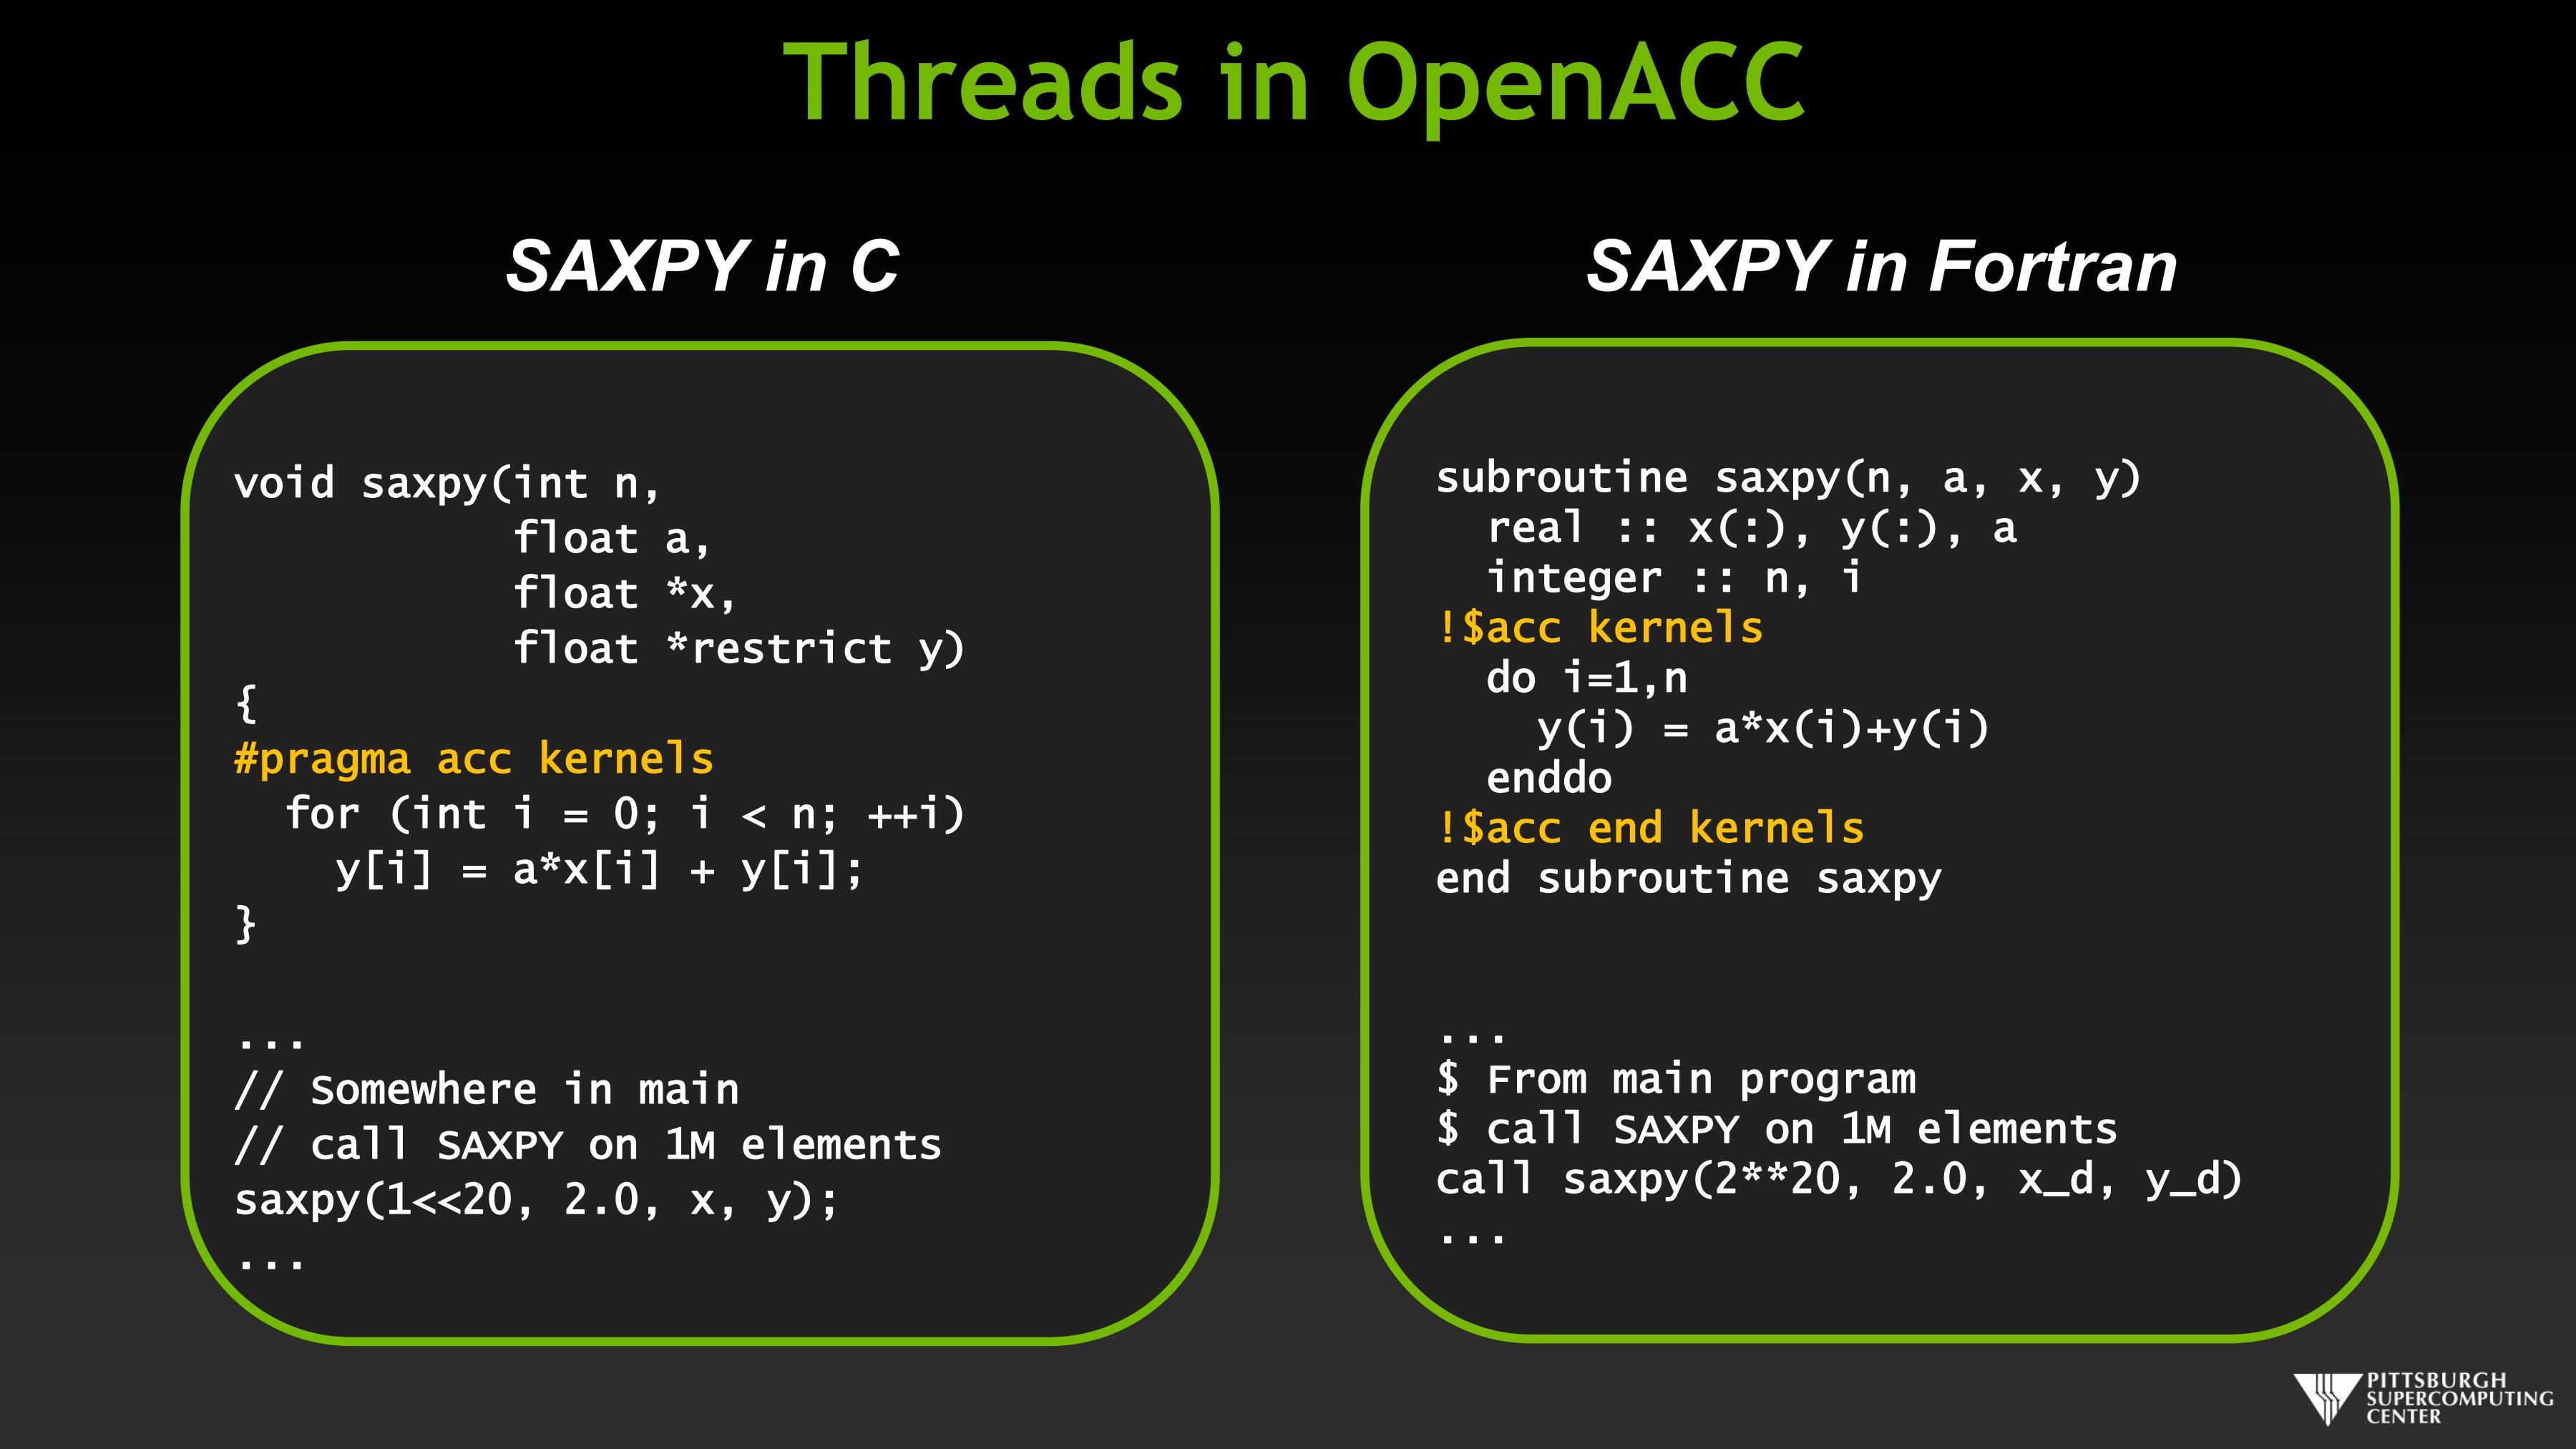 Threads in OpenACC